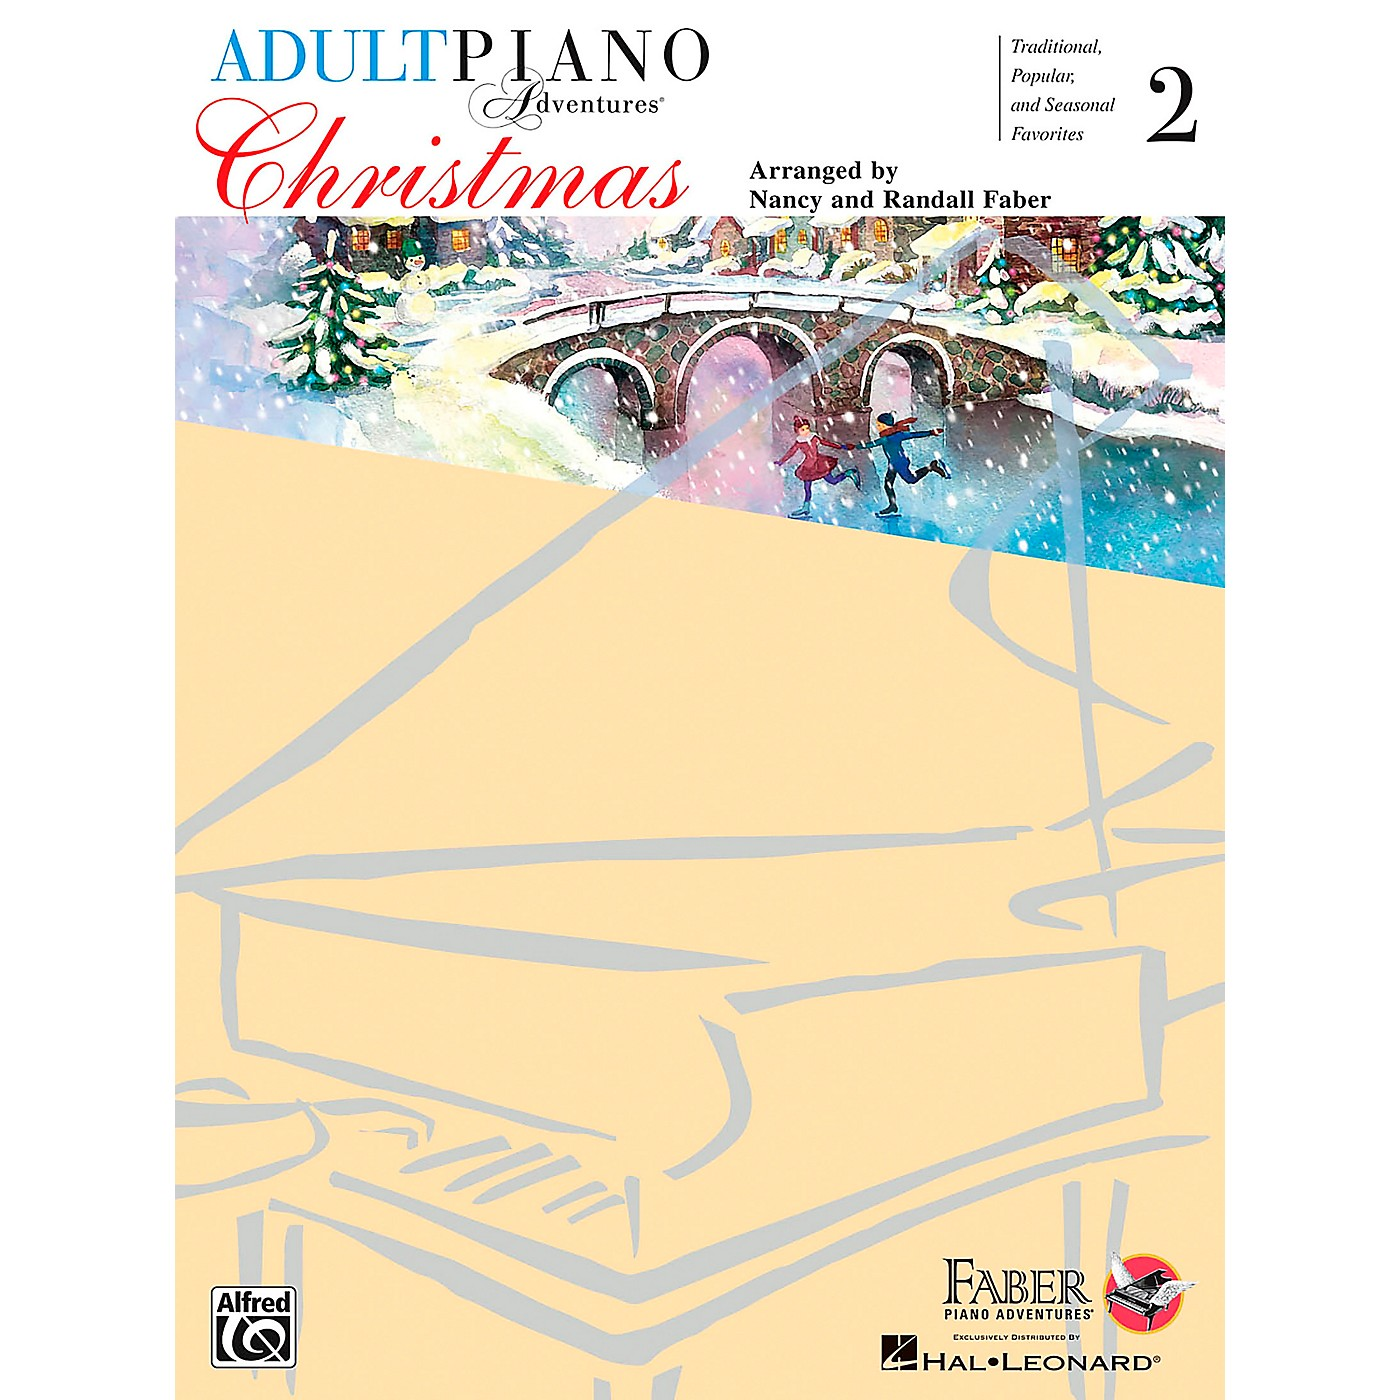 Faber Piano Adventures Adult Piano Adventures - Christmas Book 2 thumbnail